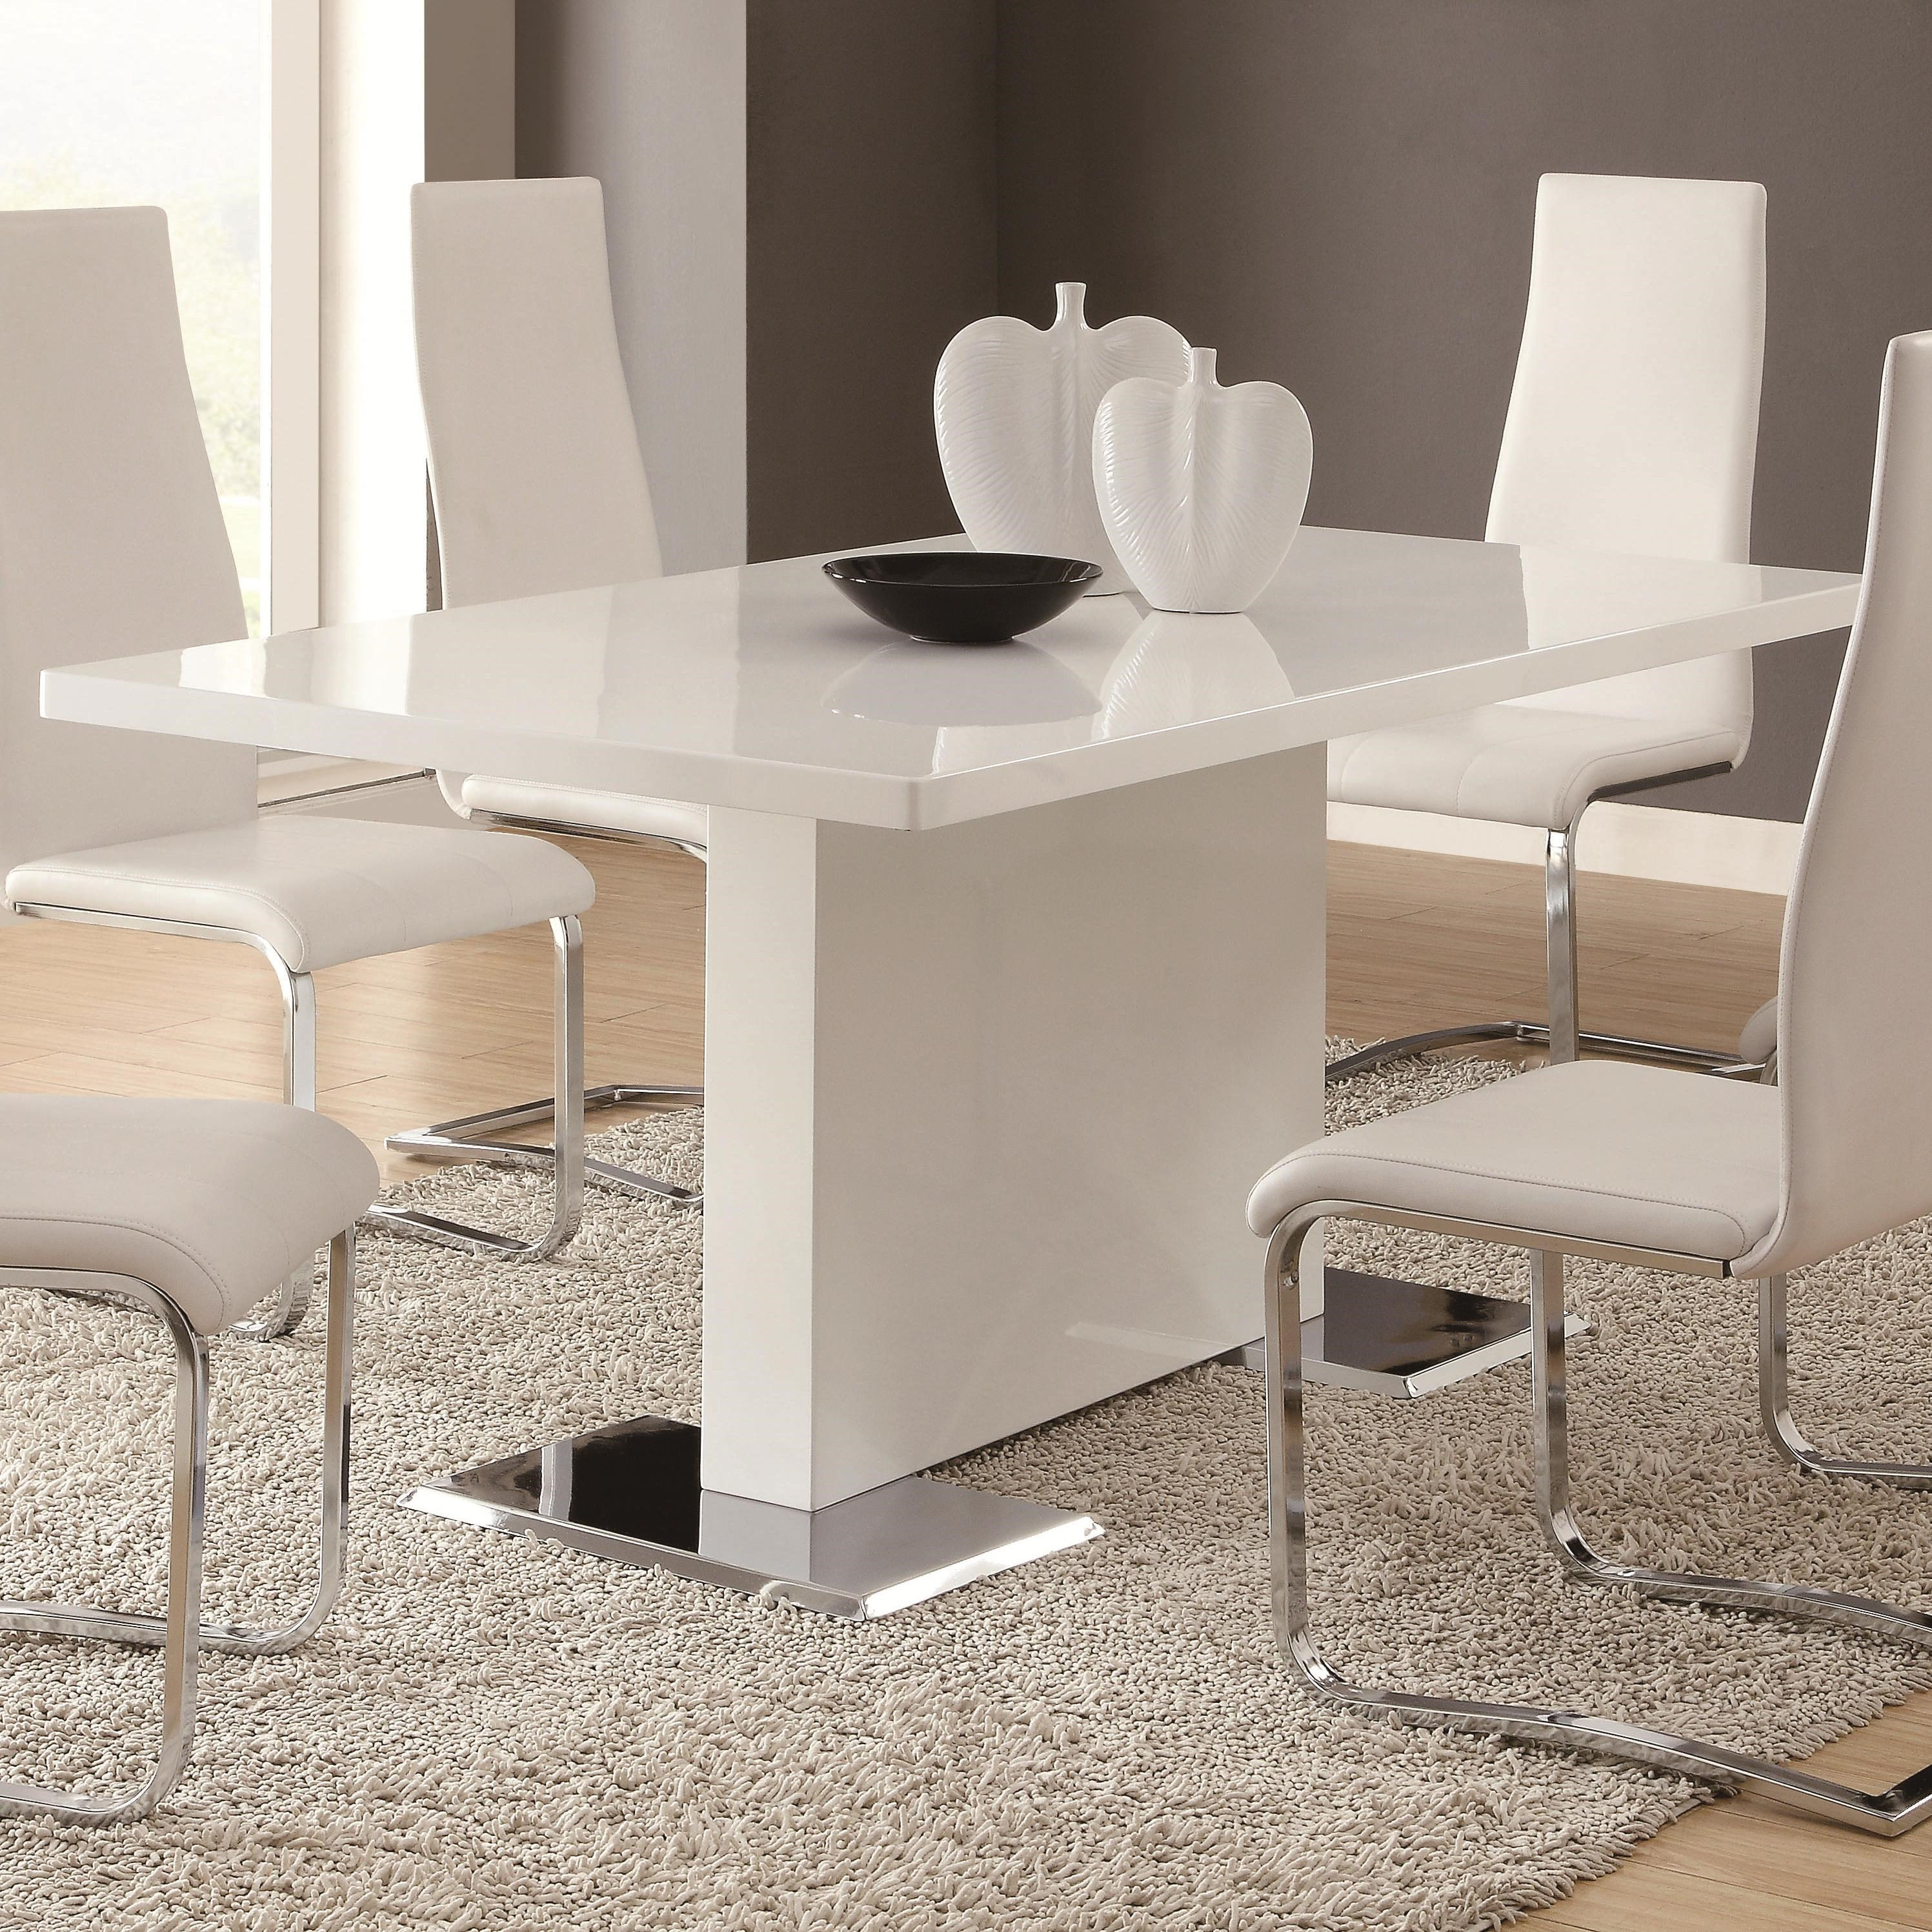 modern kitchen table Coaster Modern Dining White Dining Table with Chrome Metal Base Del Sol Furniture Dining Tables